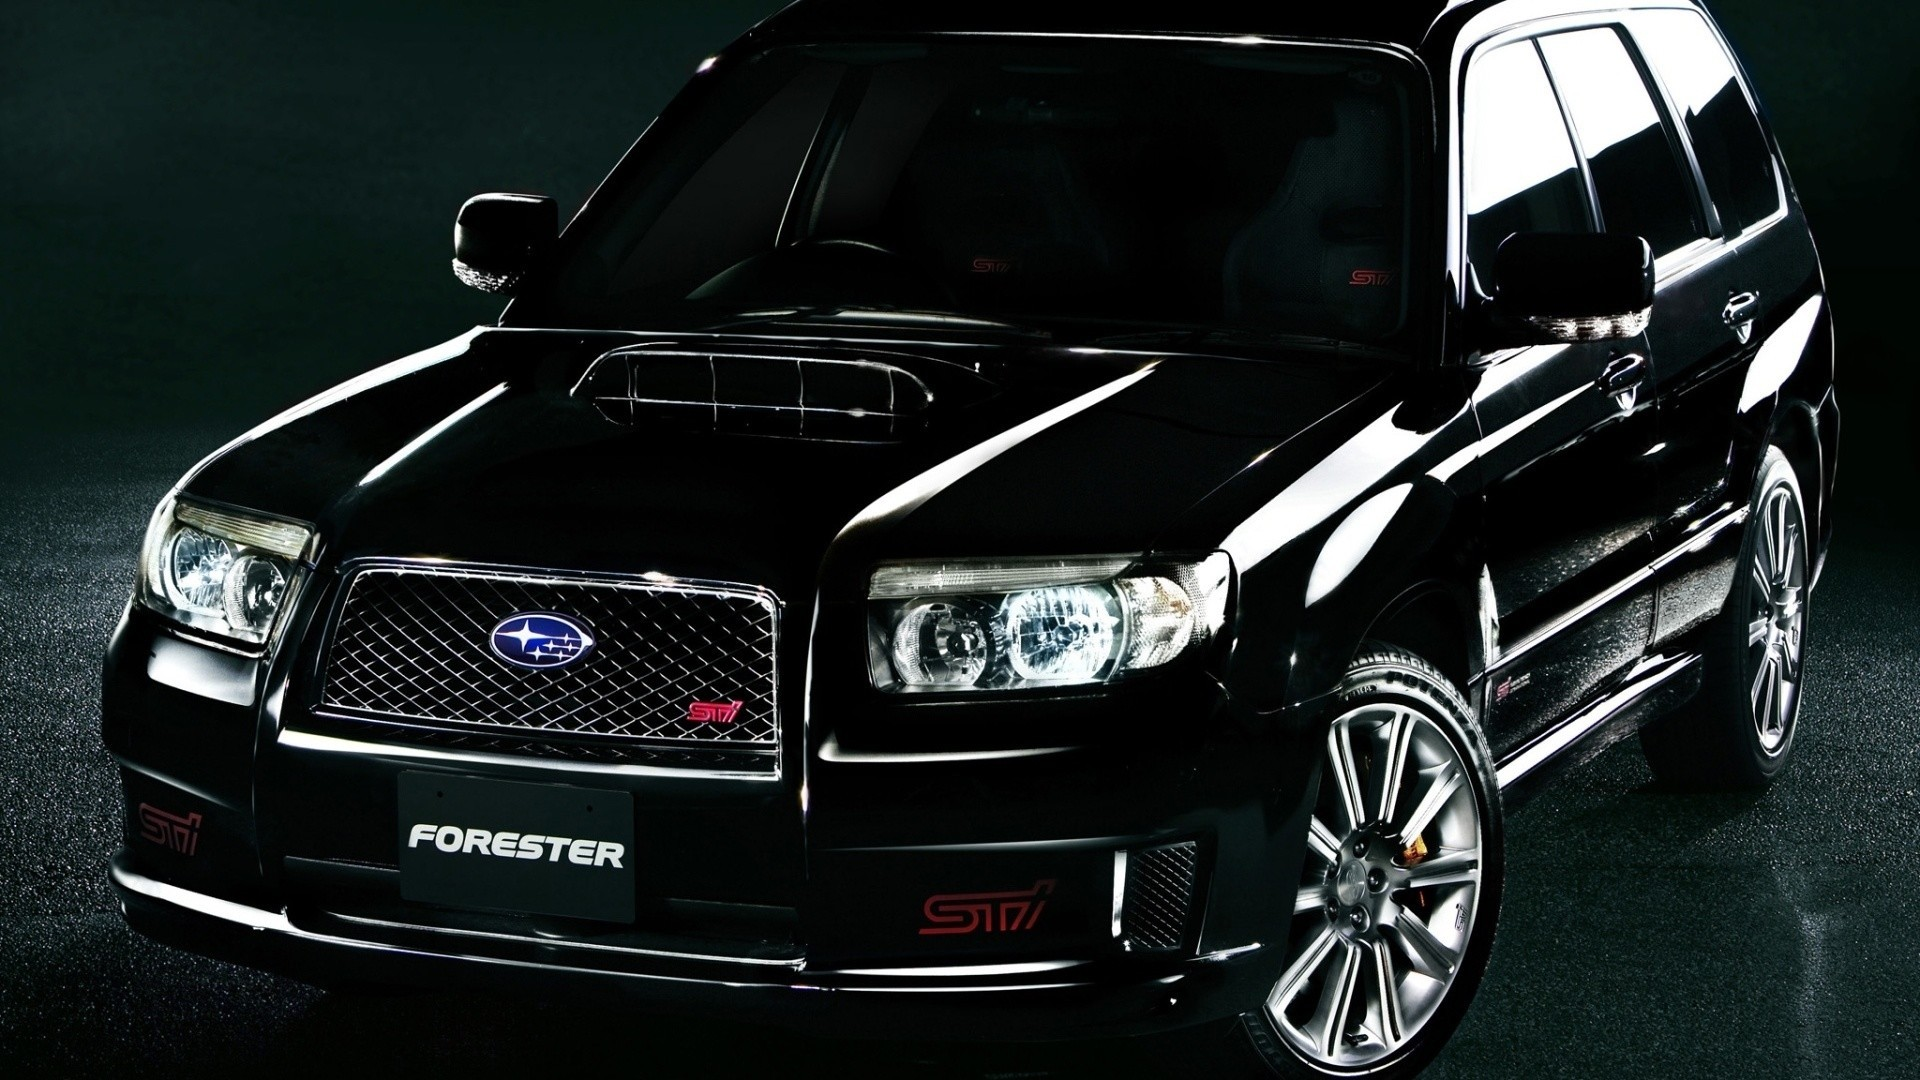 Res: 1920x1080, 2005 Subaru Forester STI Wallpapers HD Images - WSupercars | Best Games  Wallpapers | Pinterest |